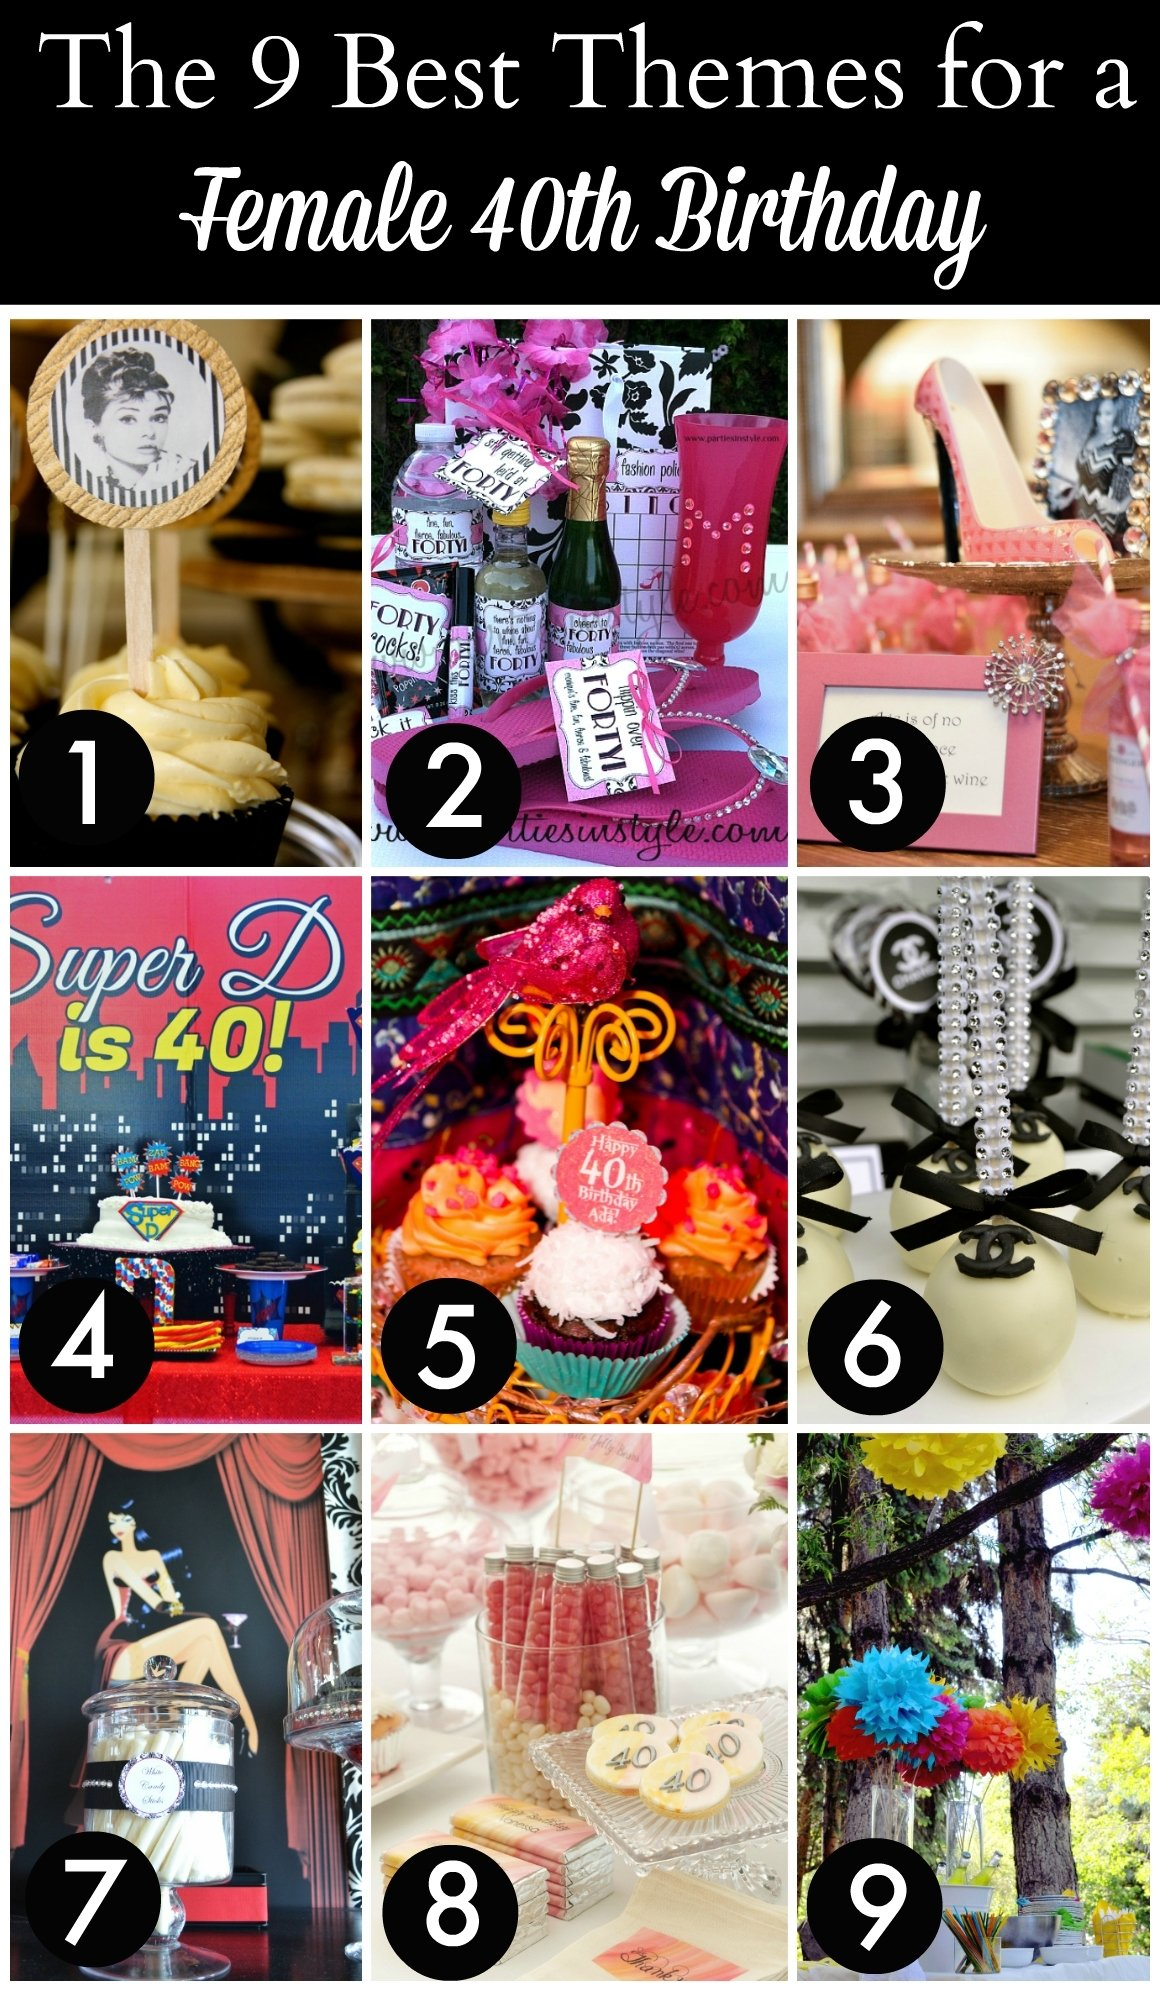 10 Fantastic 40Th Birthday Party Ideas For Women the 12 best 40th birthday themes for women catch my party 6 2020